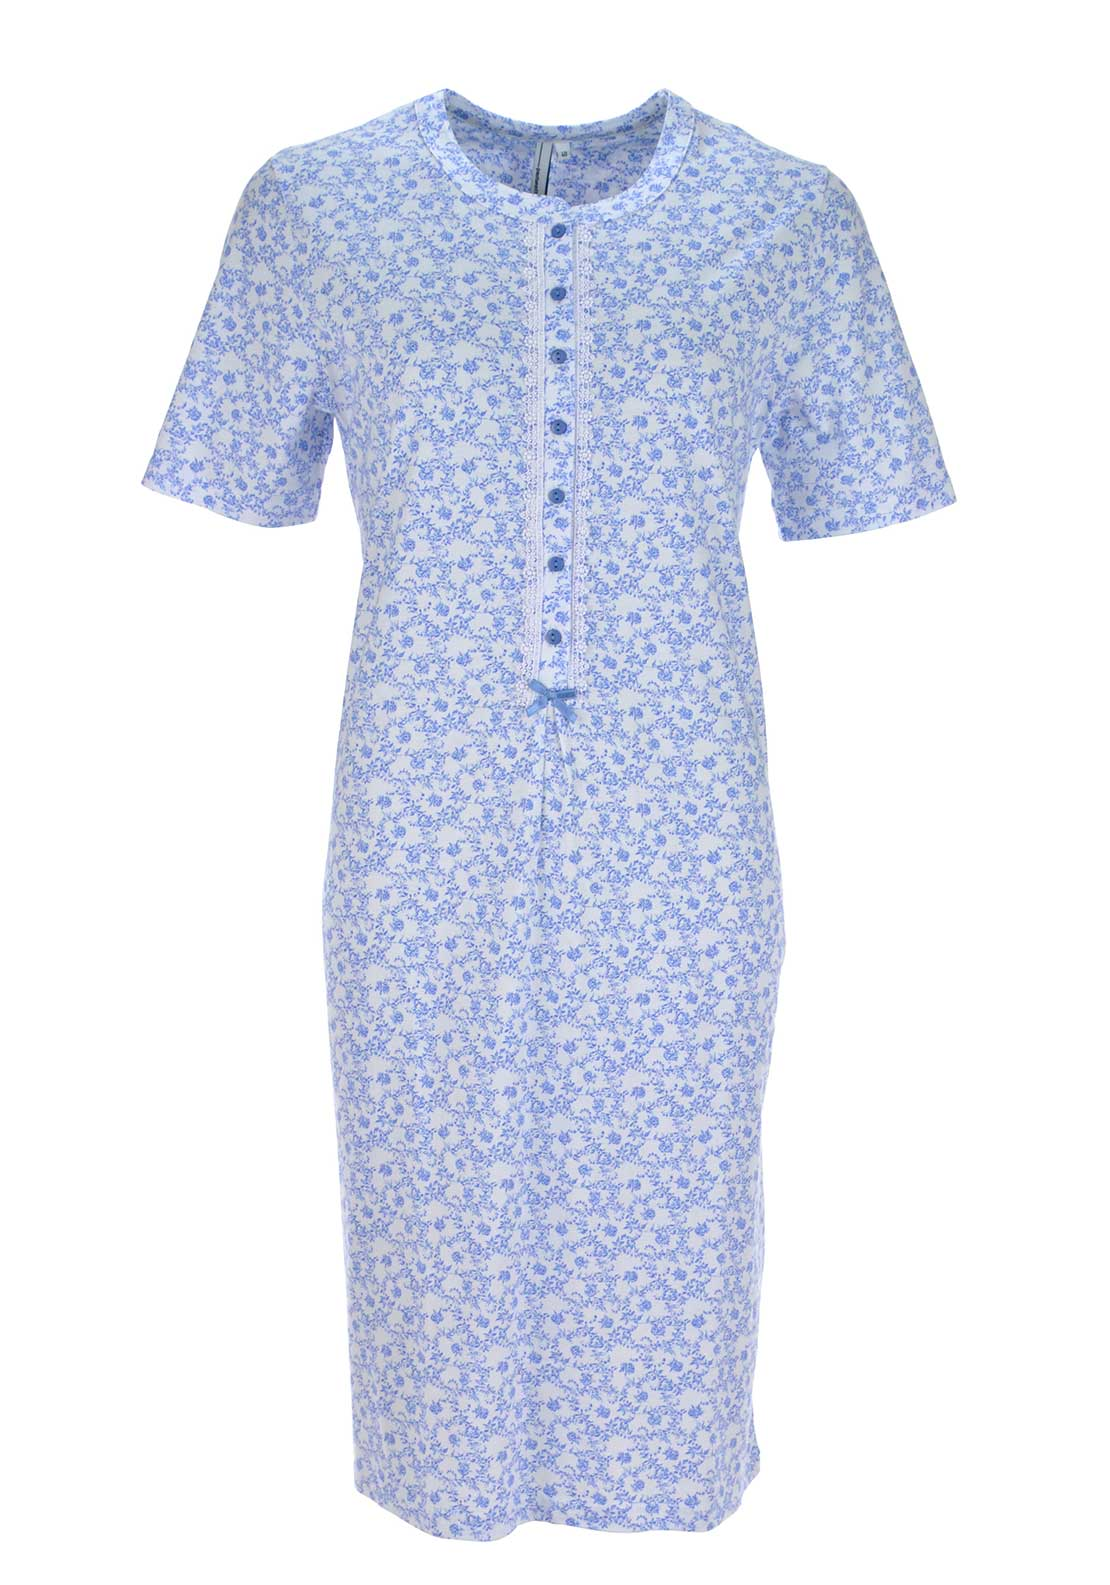 Pastunette Vintage Floral Print Night Dress, Blue and White